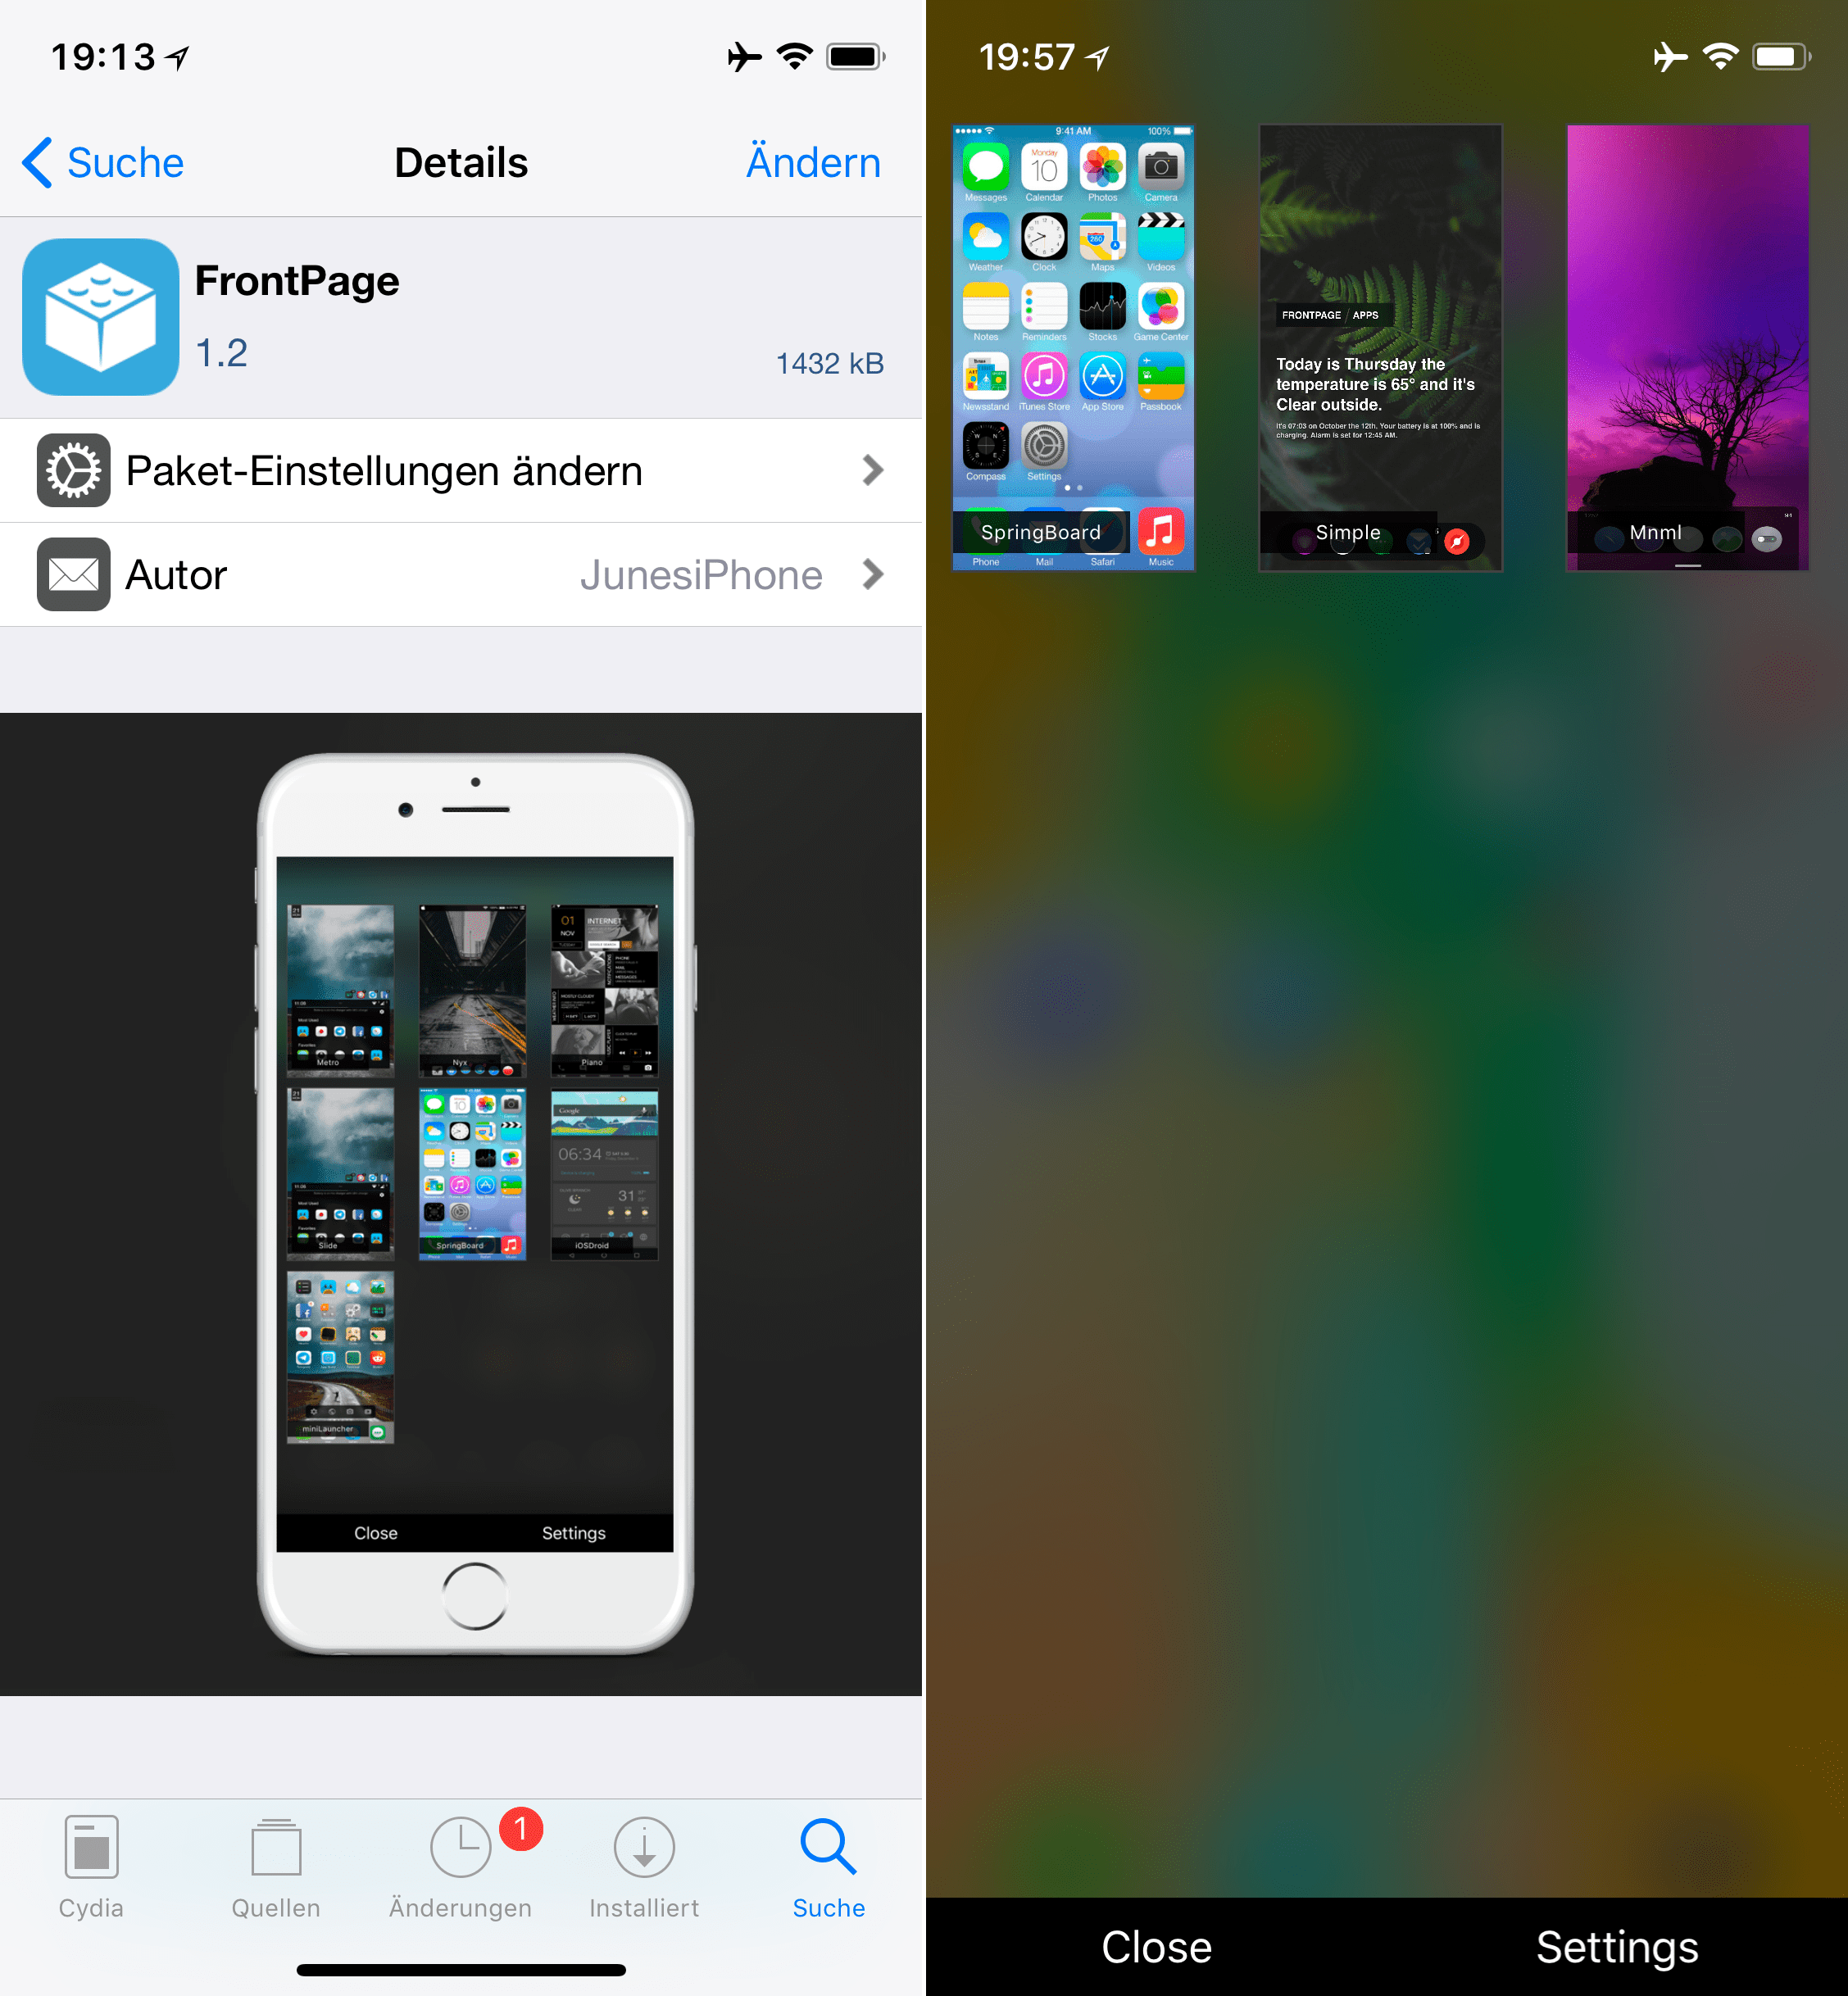 HTML themes for the homescreen, FrontPage, Top, Cydia, Tweak, Sileo, Download, Guide, Junesiphone, free, .deb, Hack4Life, Fabian Geissler